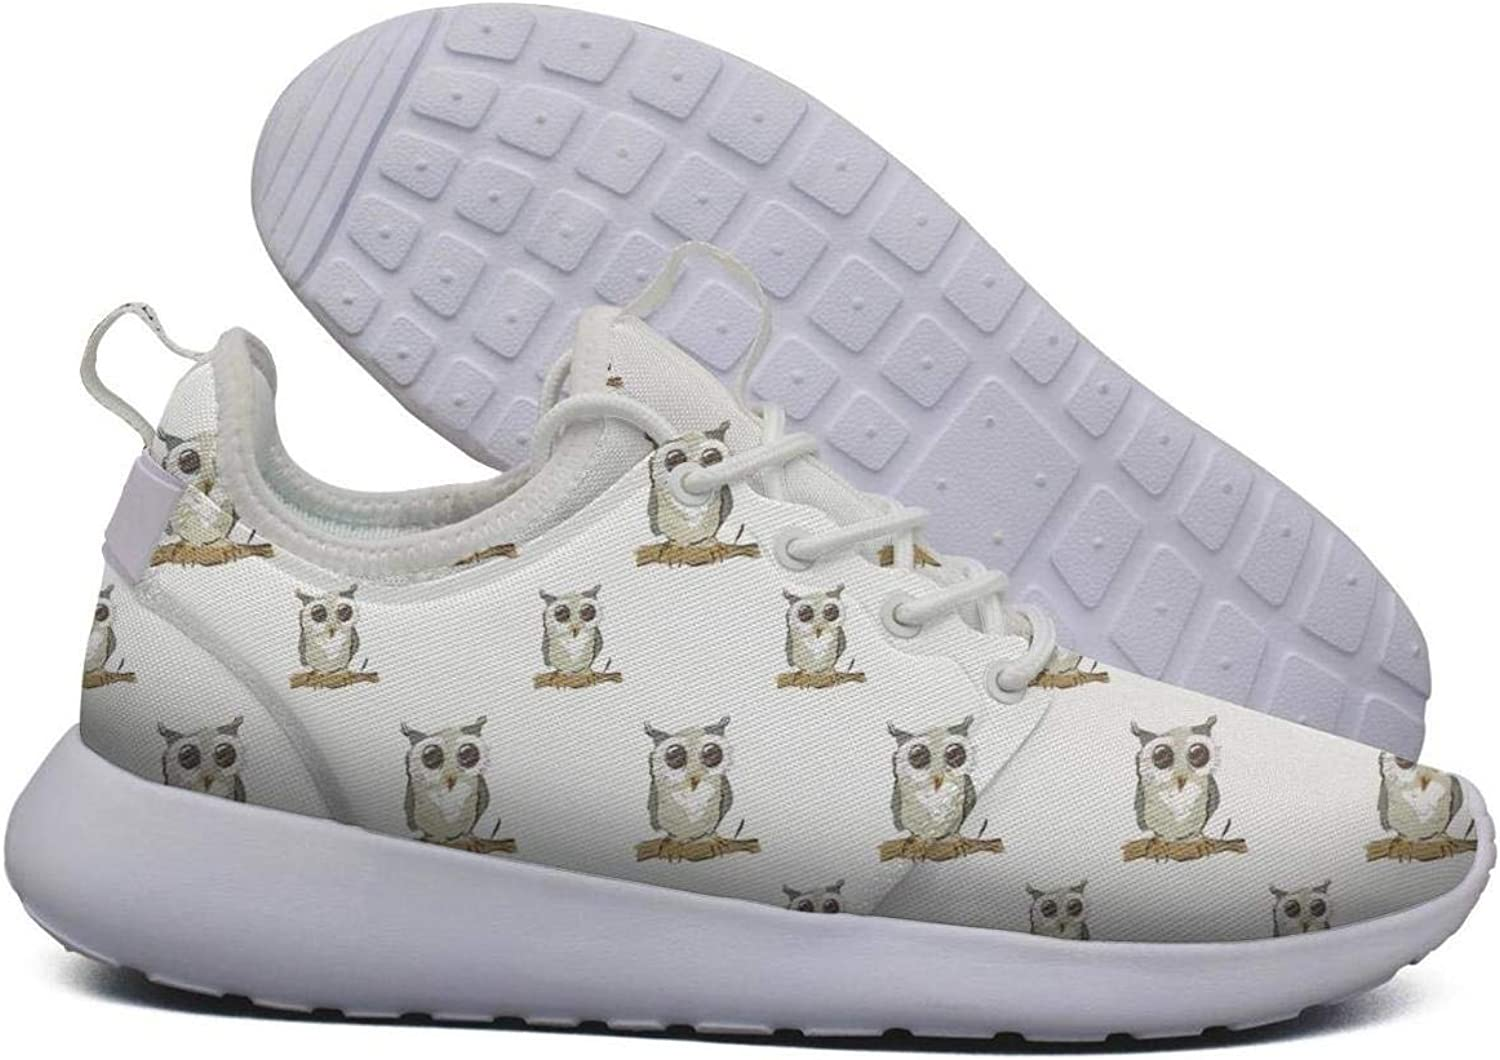 LOKIJM Bright colord Owl Print Gym shoes for Women Sports Comfortable and Lightweight Comfortable Walking shoes